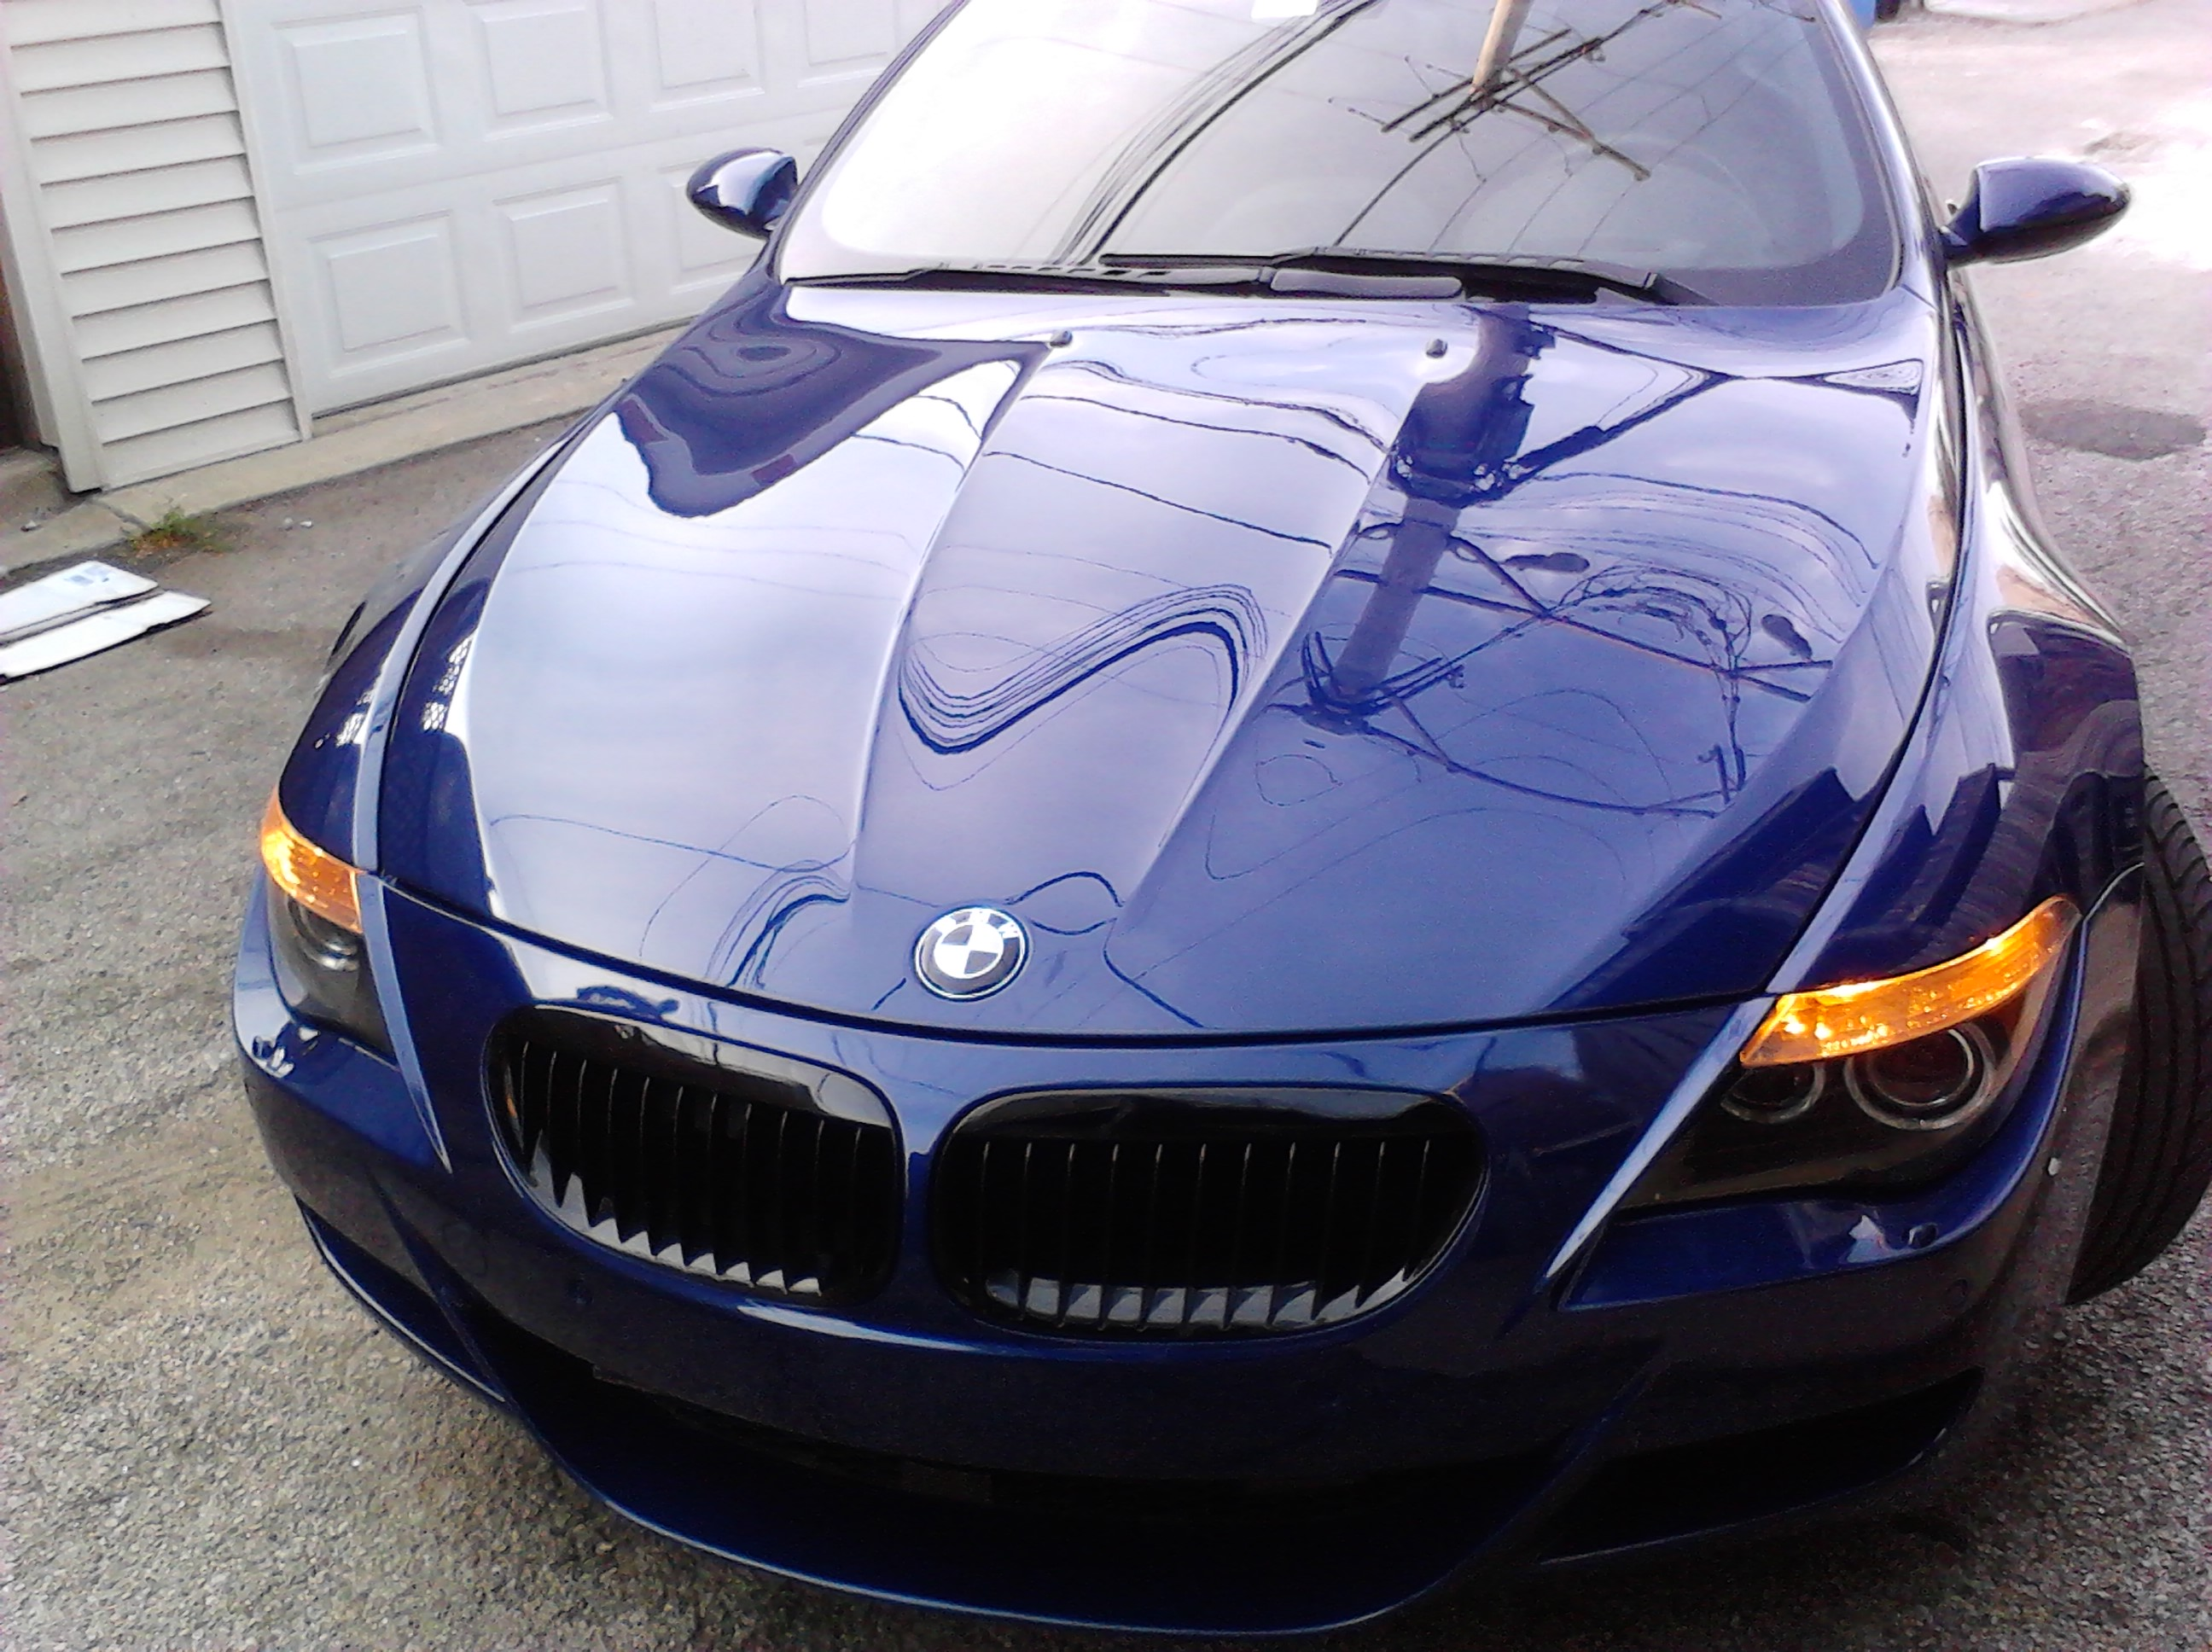 new hood (neiman marcus/competition edition) - BMW M5 Forum and M6 ...